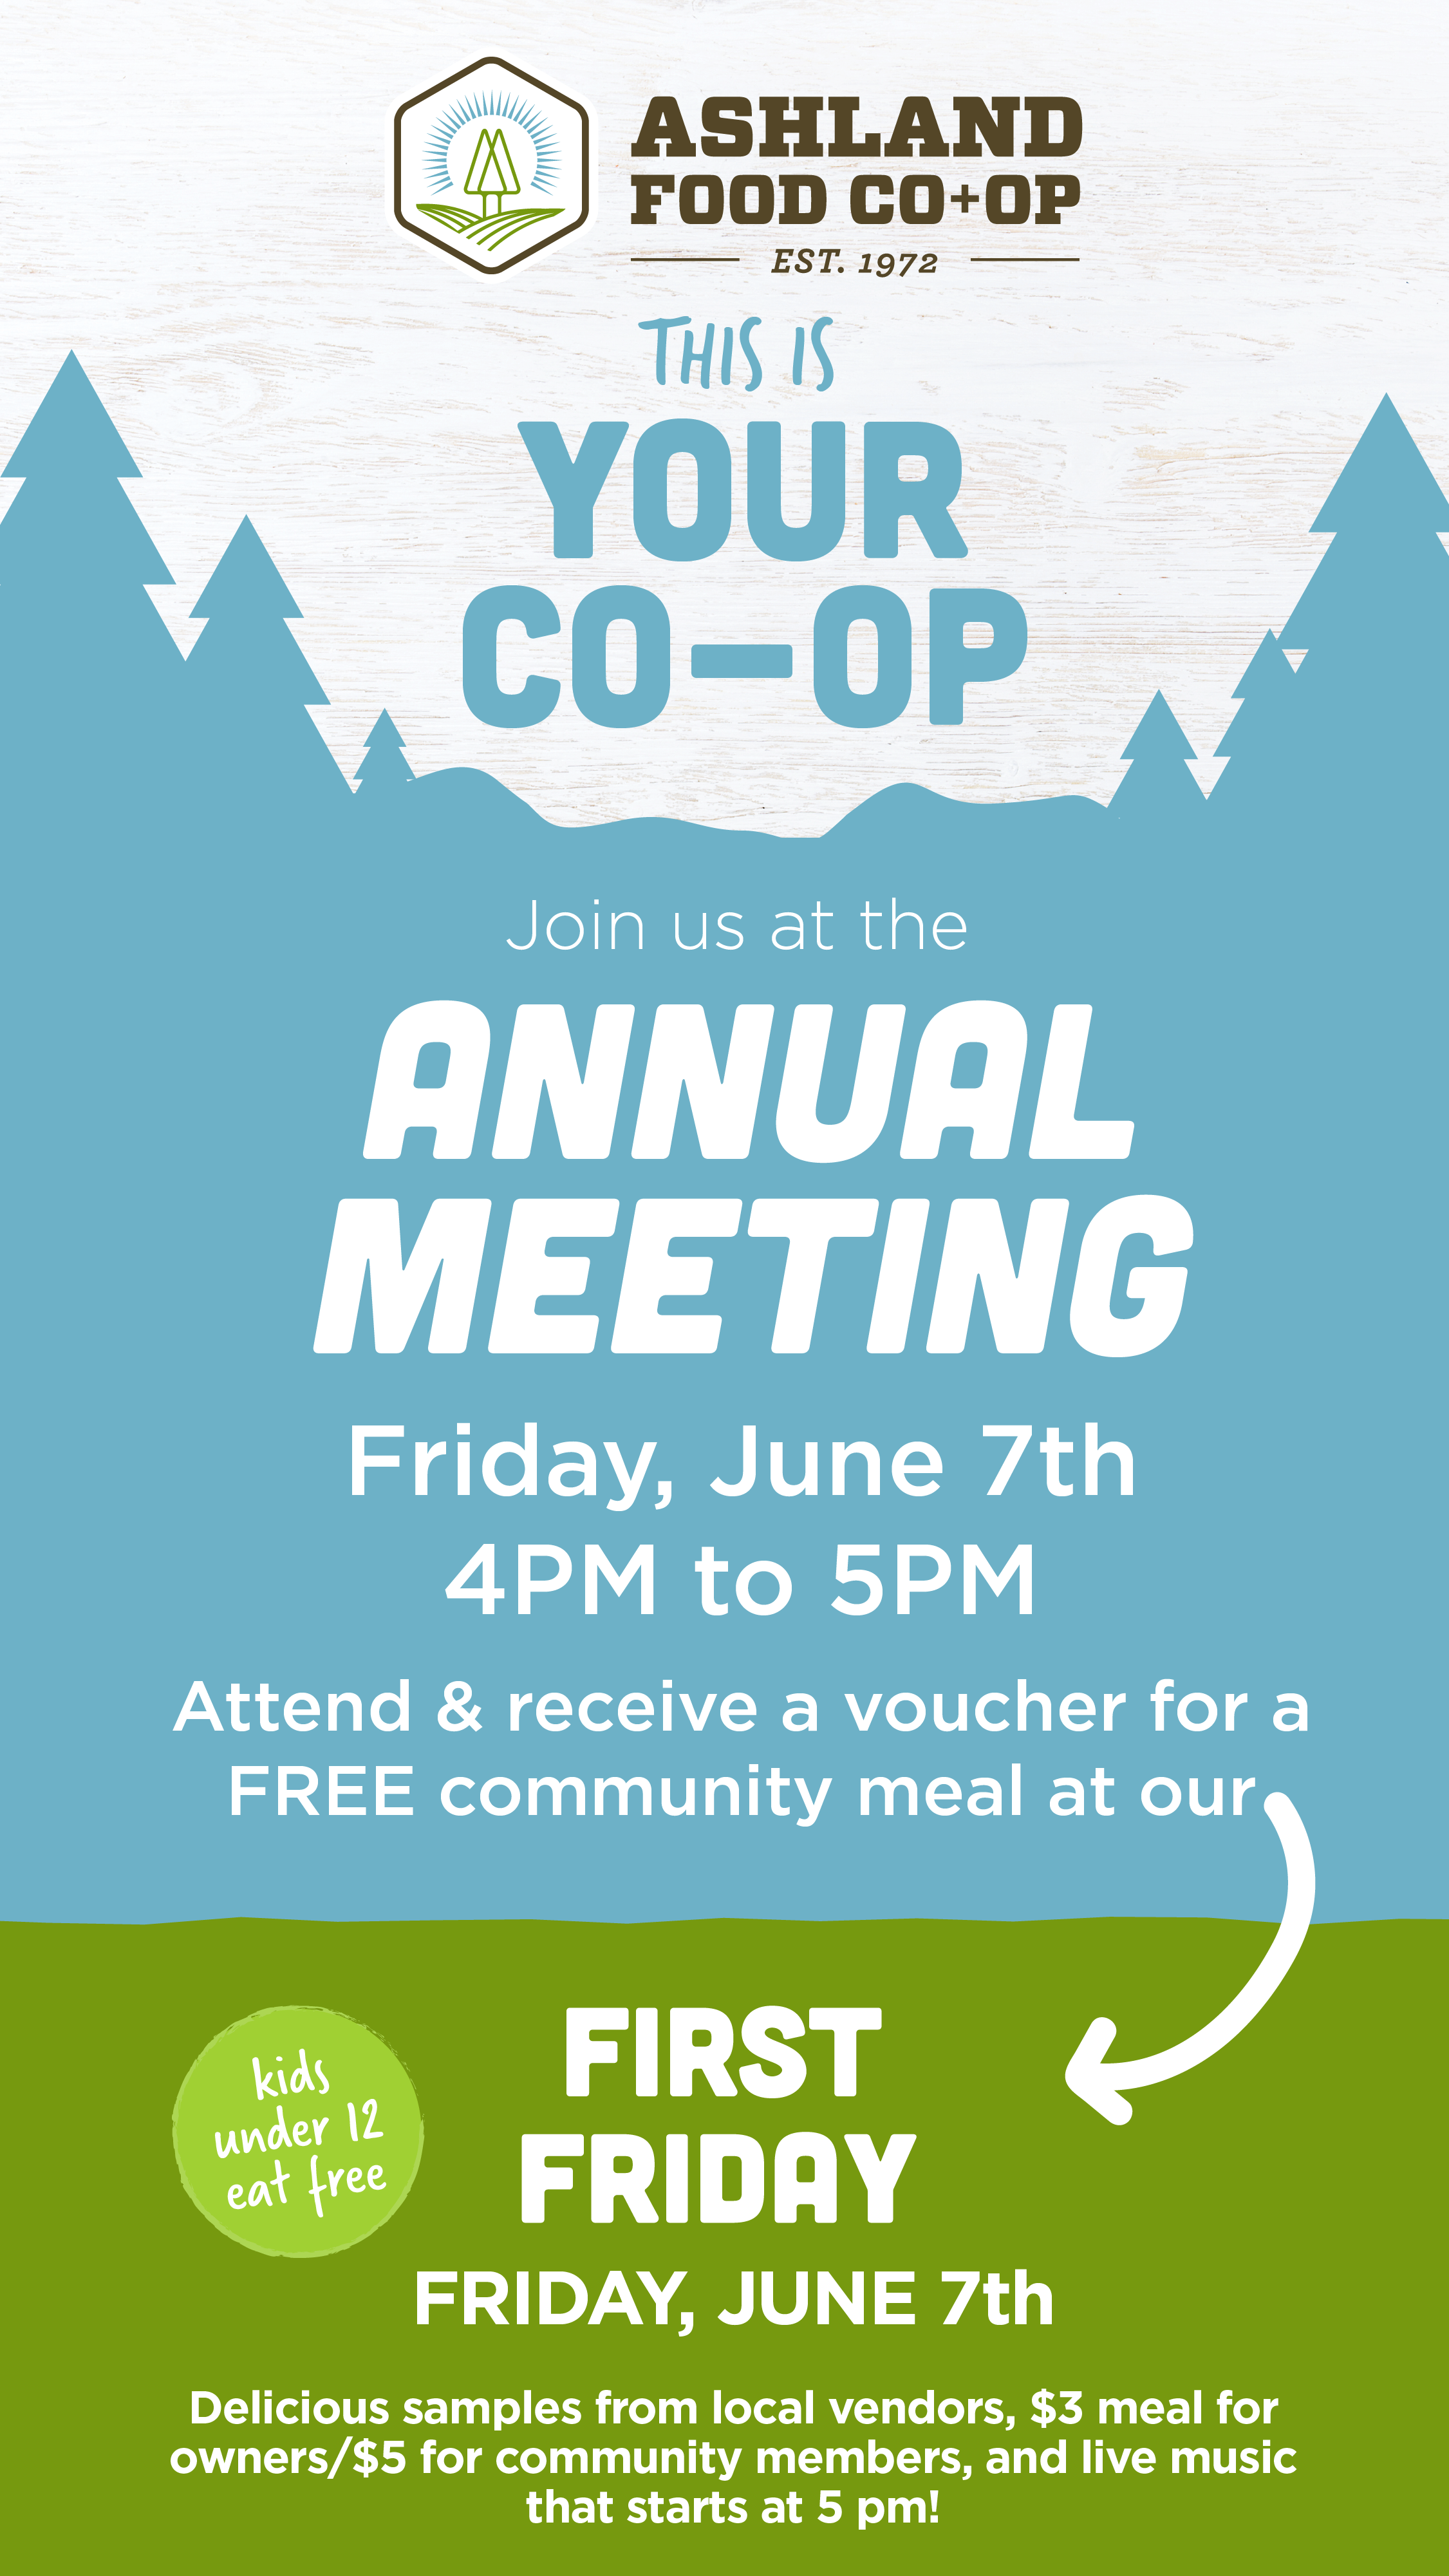 2019 Annual Meeting - 4-5pm at the Pioneer Conference Room